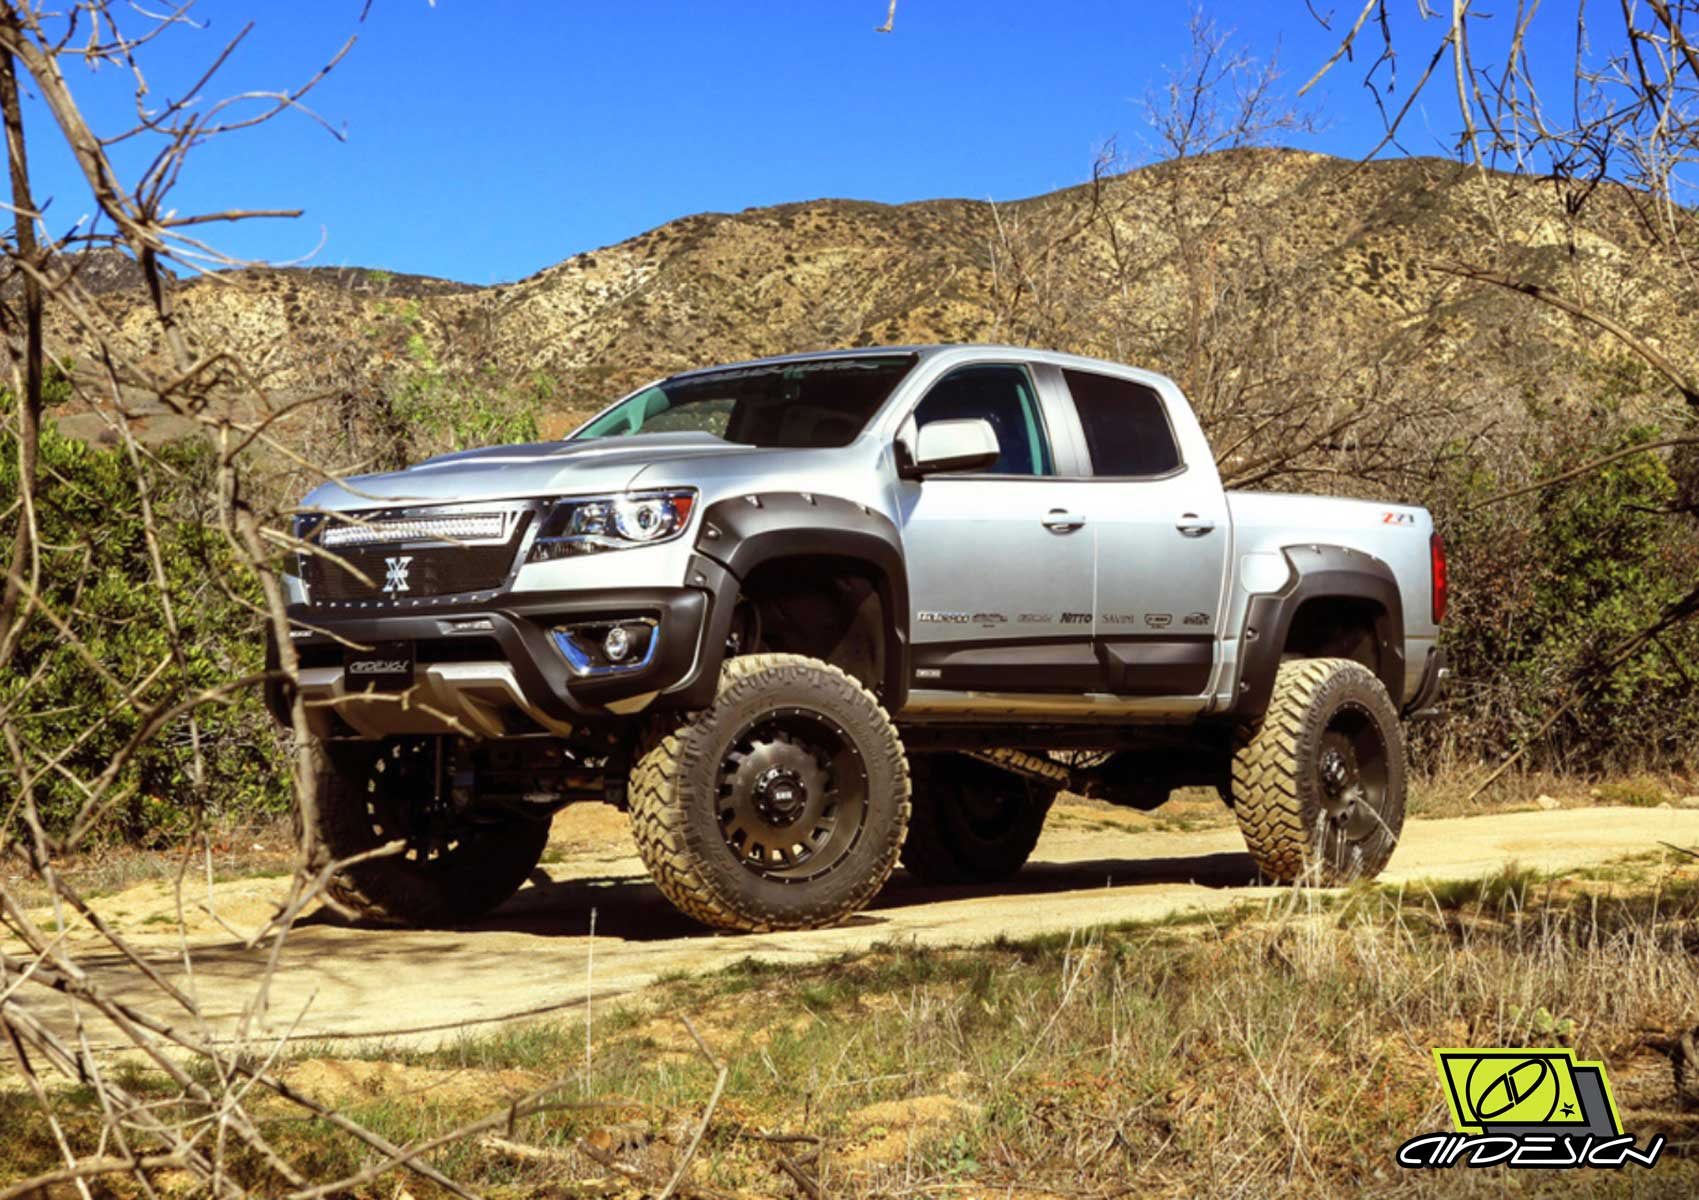 Chevy Colorado Air Design Off Road Body Kit